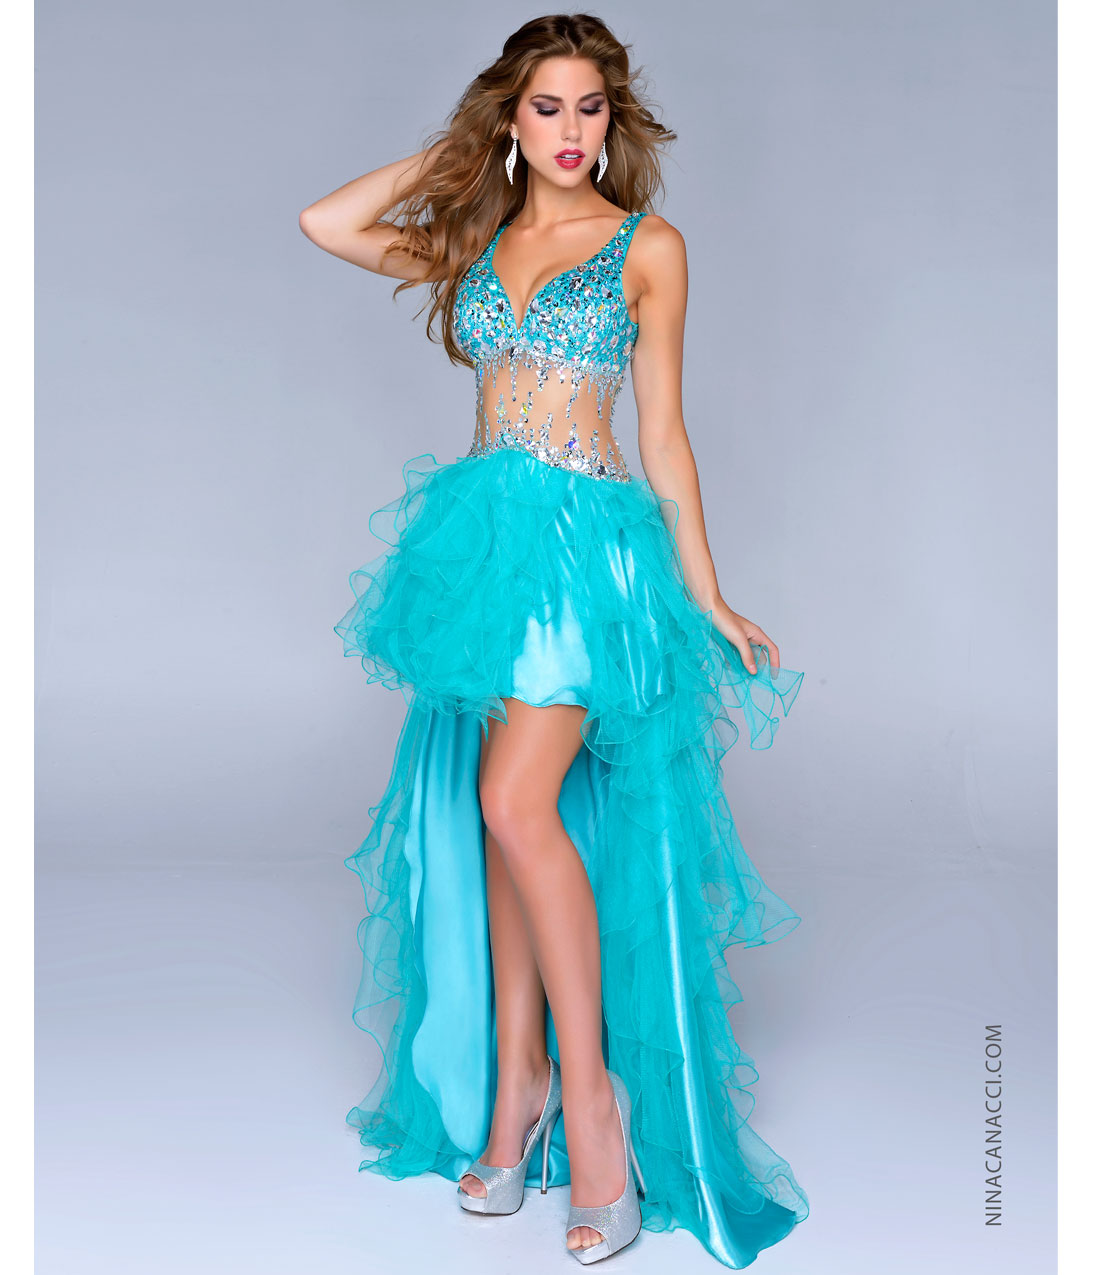 Canacci 2014 Prom Dresses - Teal Satin & Tulle Illusion High-Low ...